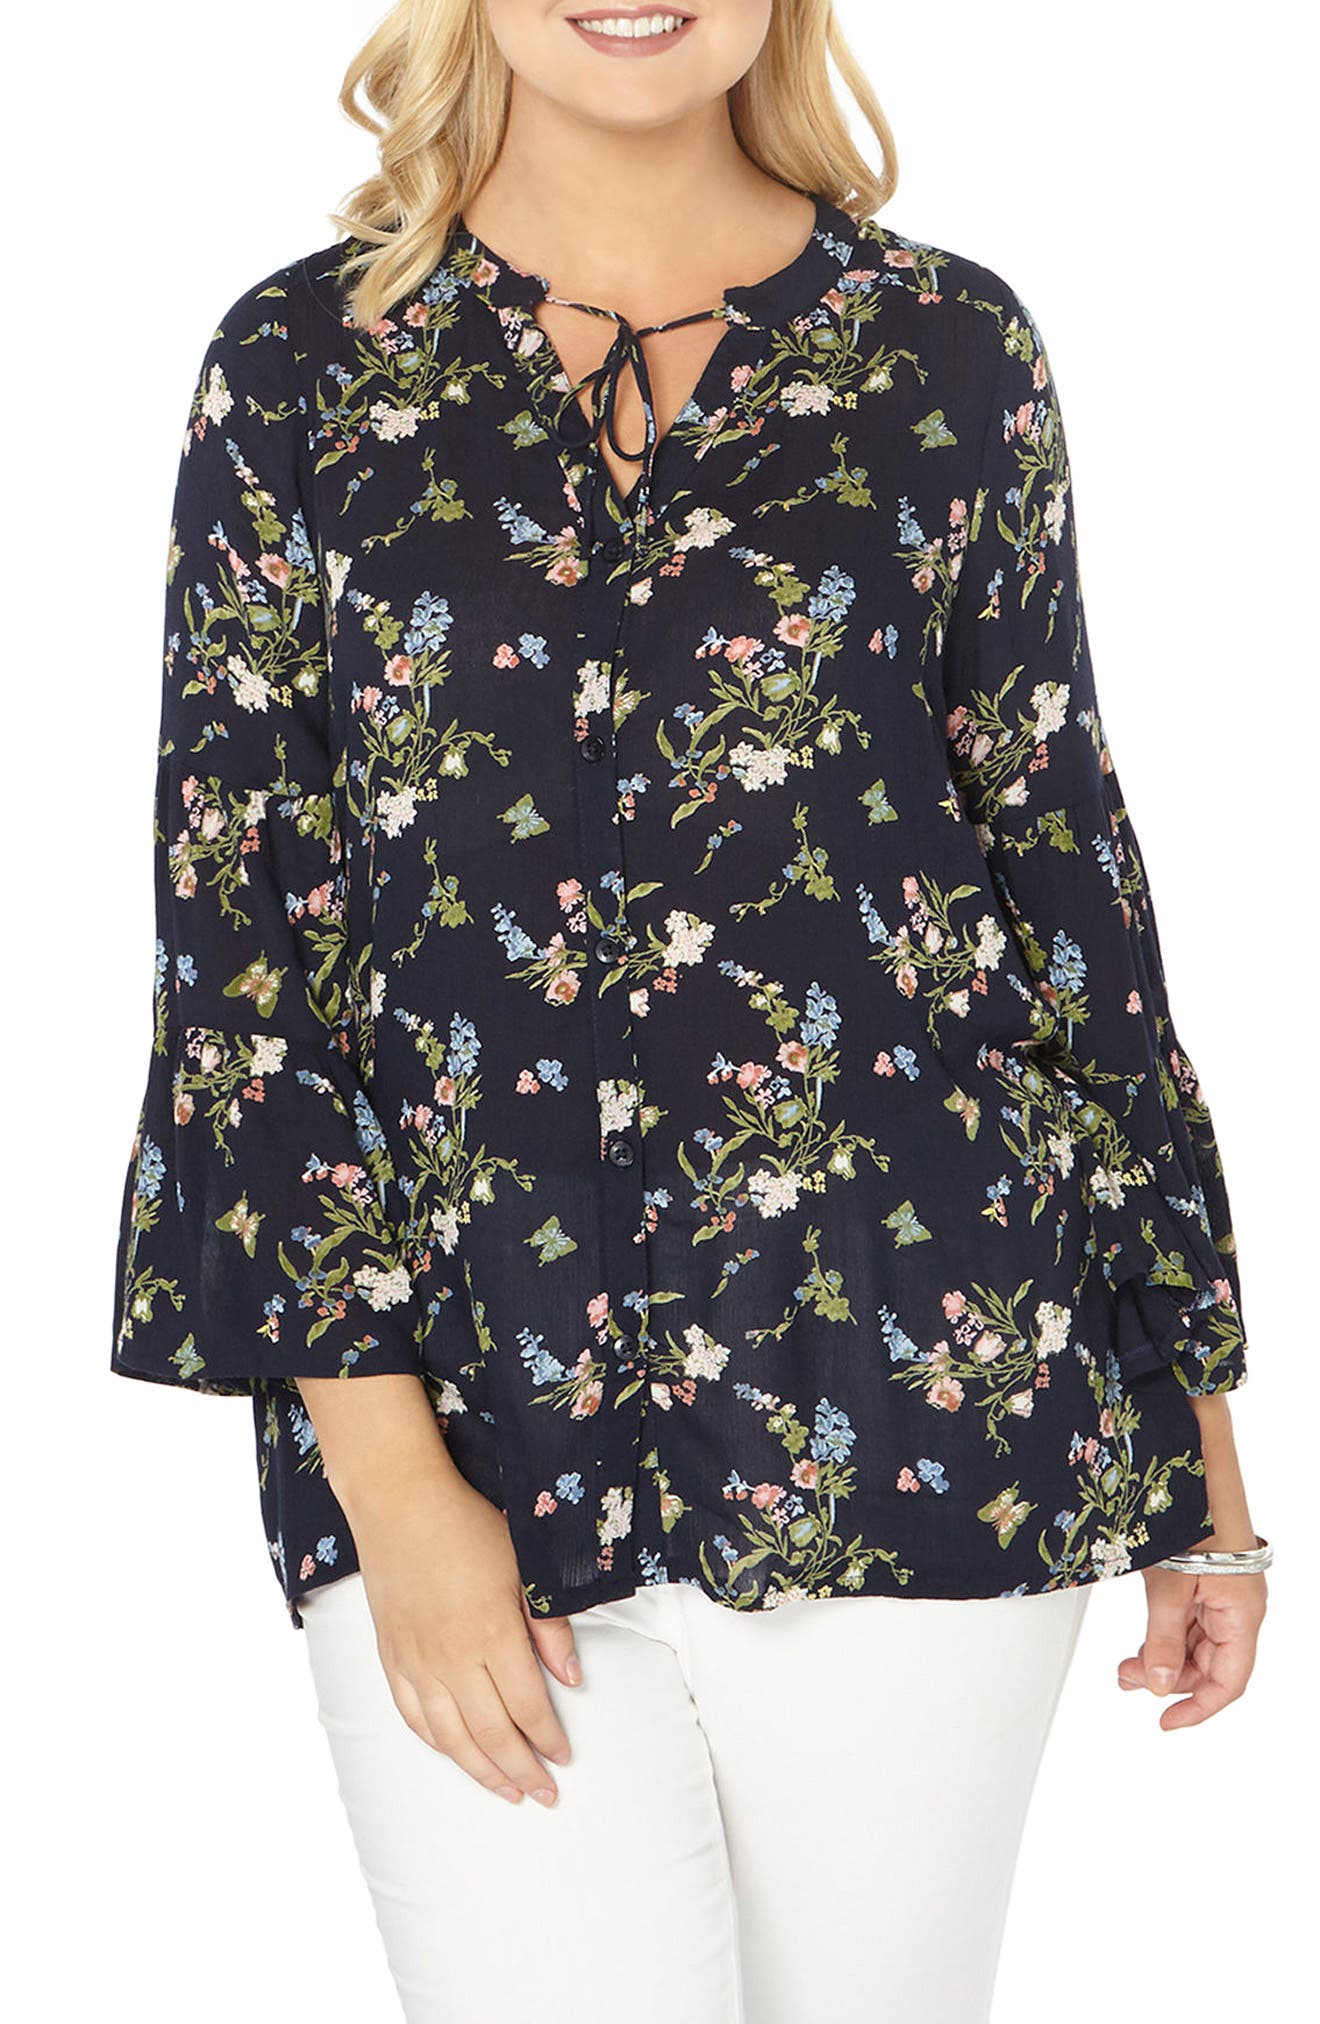 Alternate Image 1 Selected - Evans Bell Sleeve Top (Plus Size)